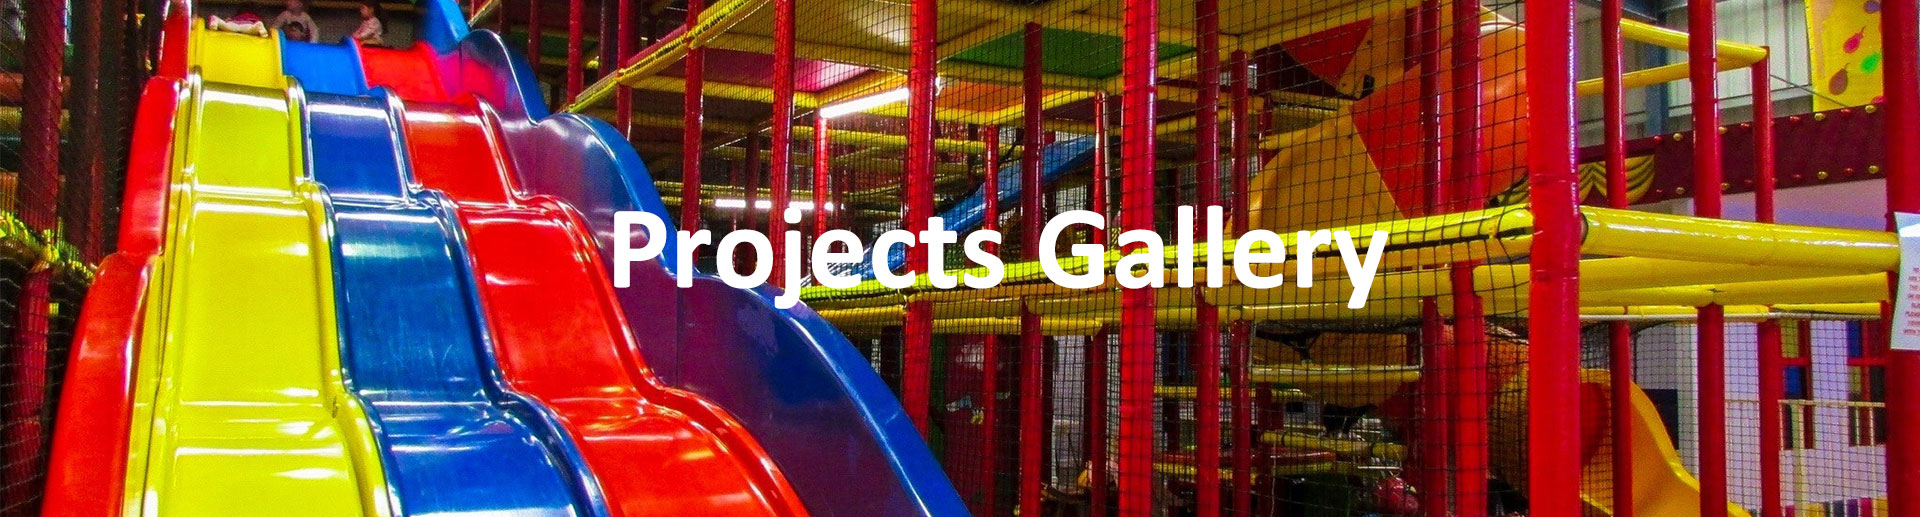 Projects Gallery